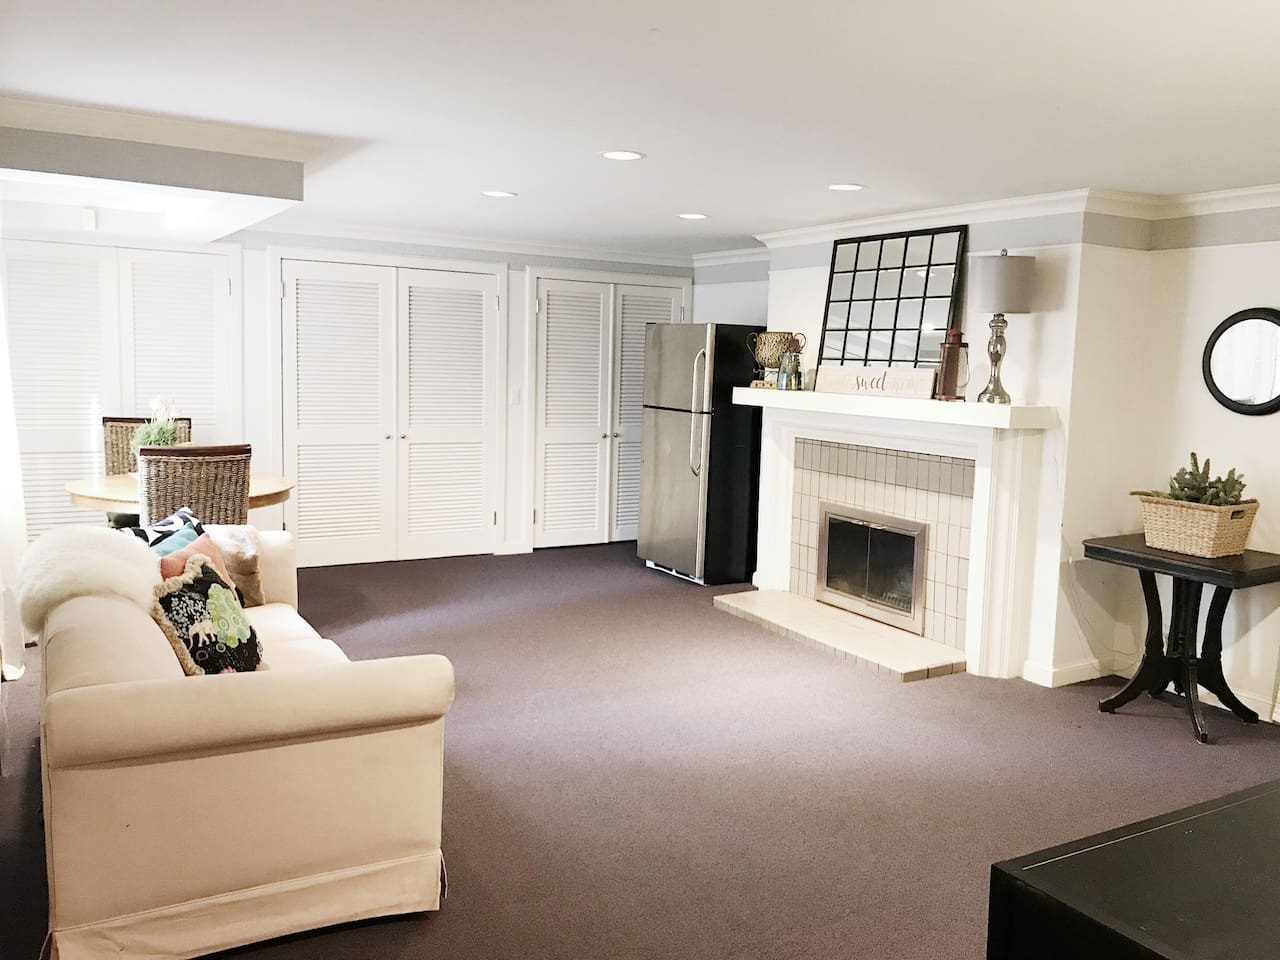 Entire 1,100 sqft Apartment-SLC/U of U/Hospitals - Apartments for ...